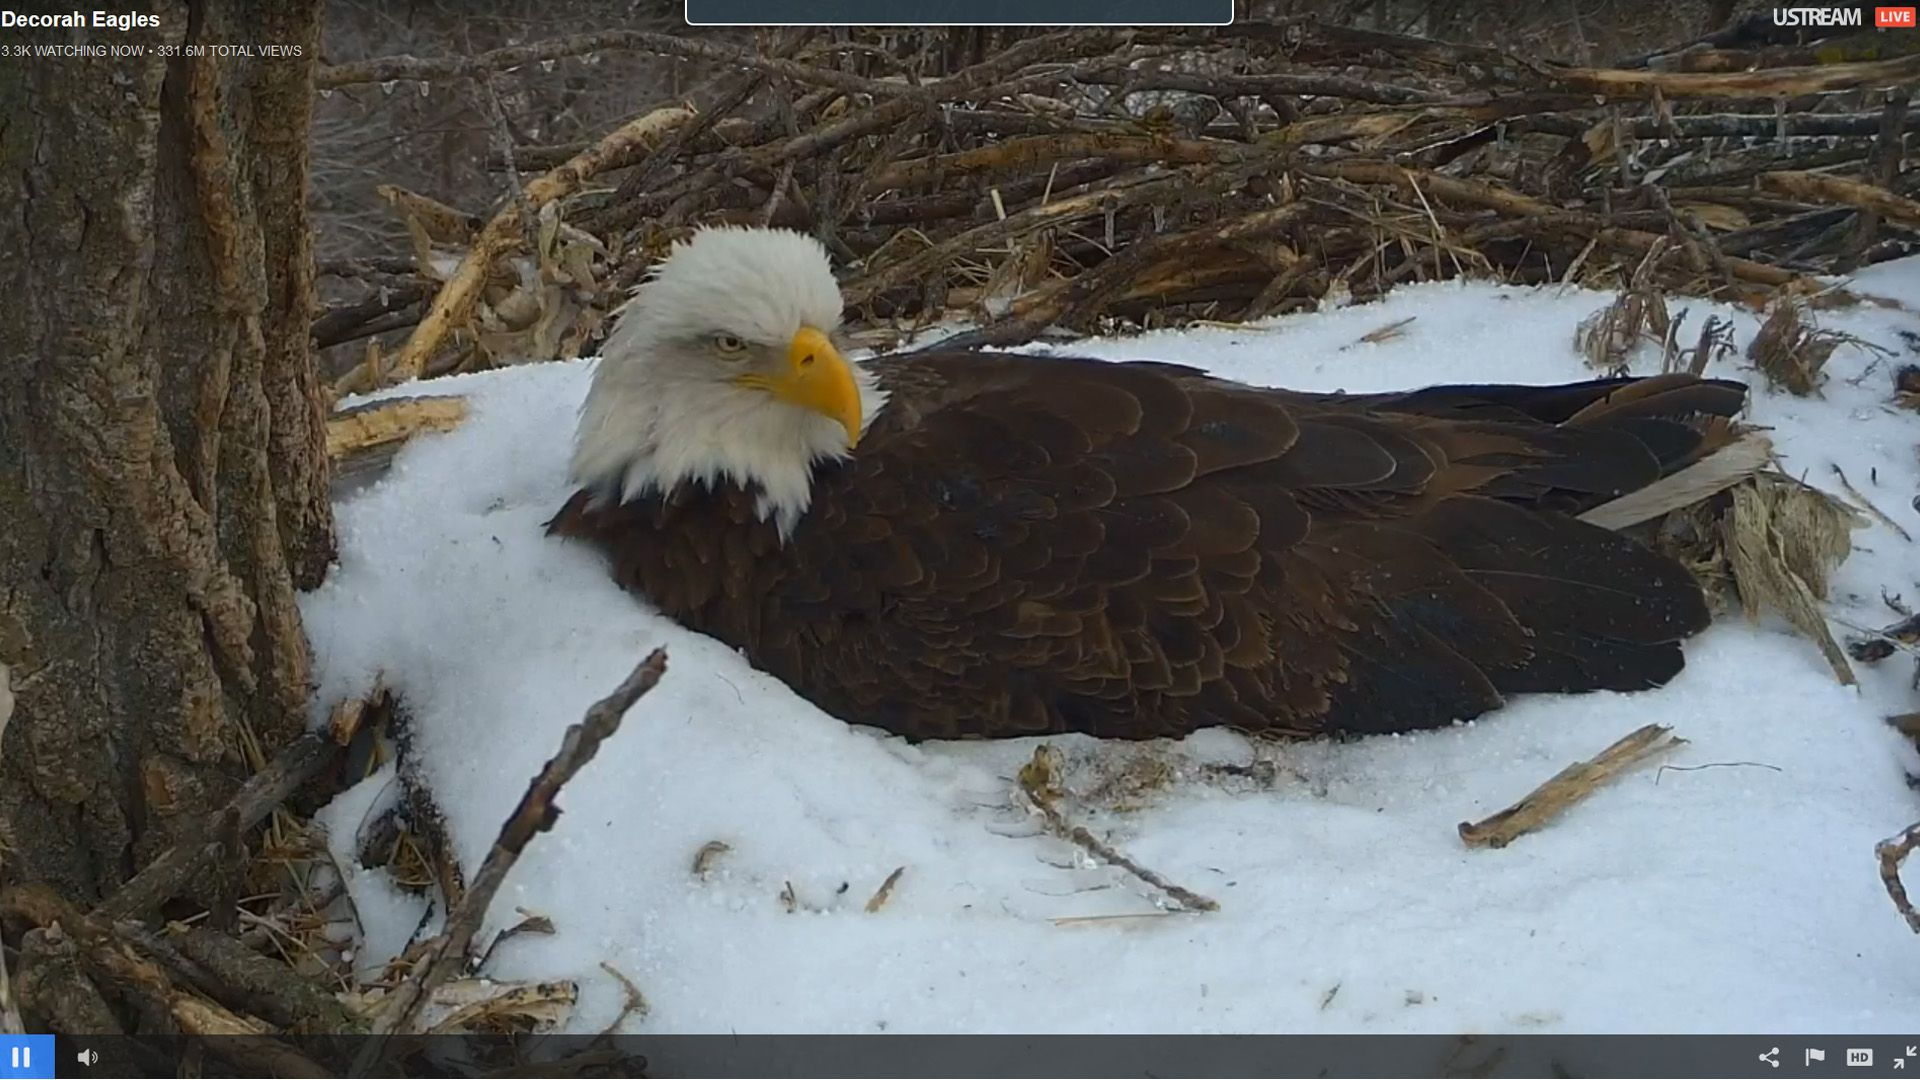 Check out the decorah bald eagles live by the raptor